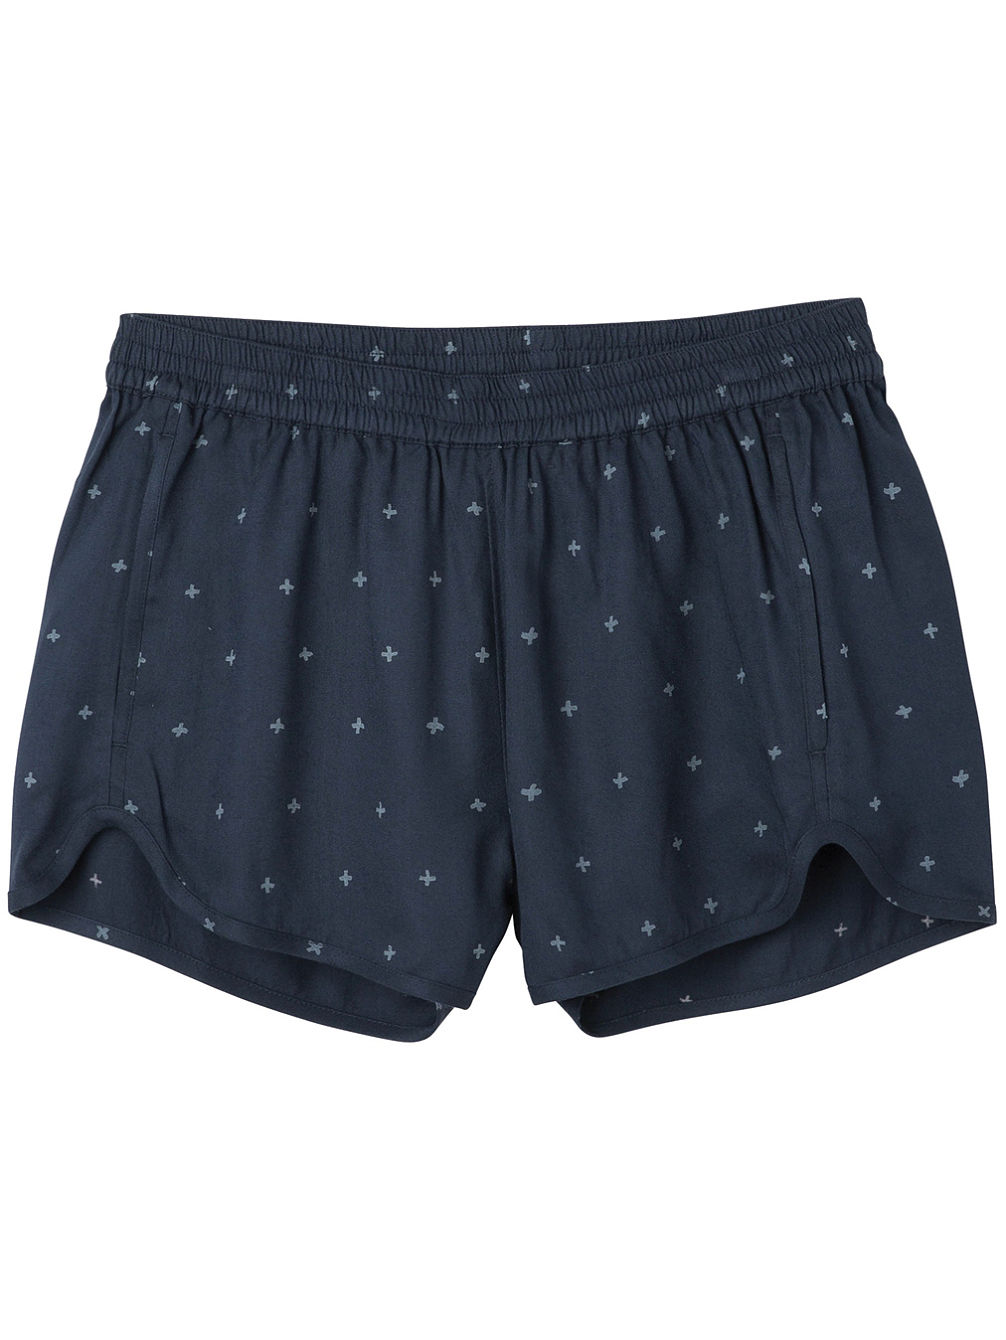 Pick Me Up Shorts